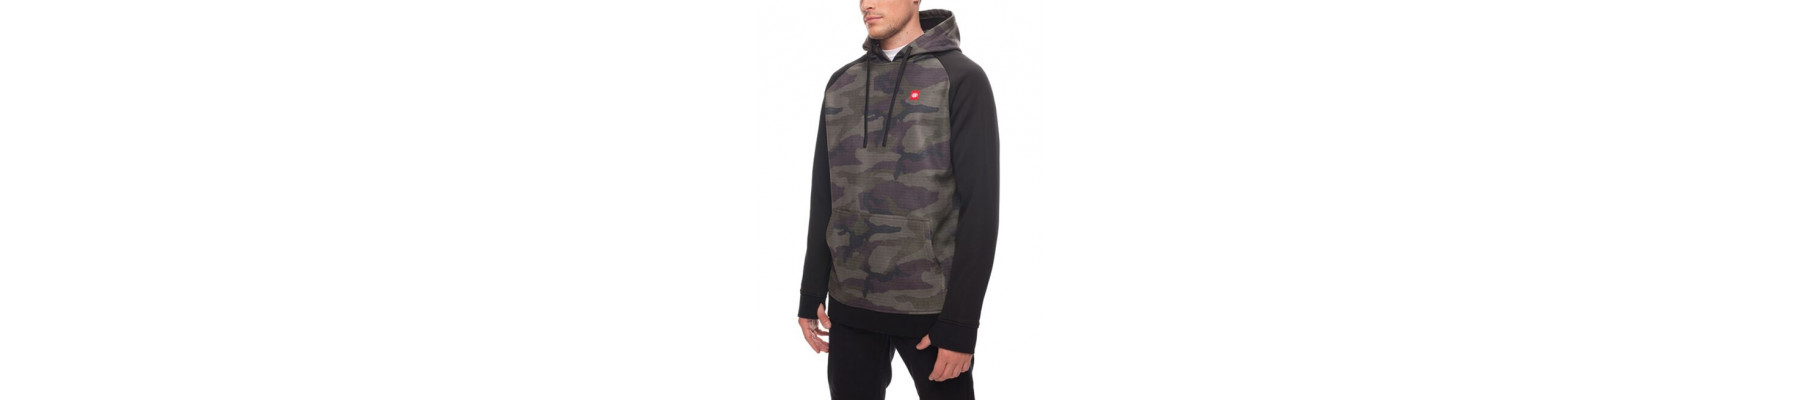 686 Knockout Bonded Fleece Hoody Fatigue Camo DRW/-7'C